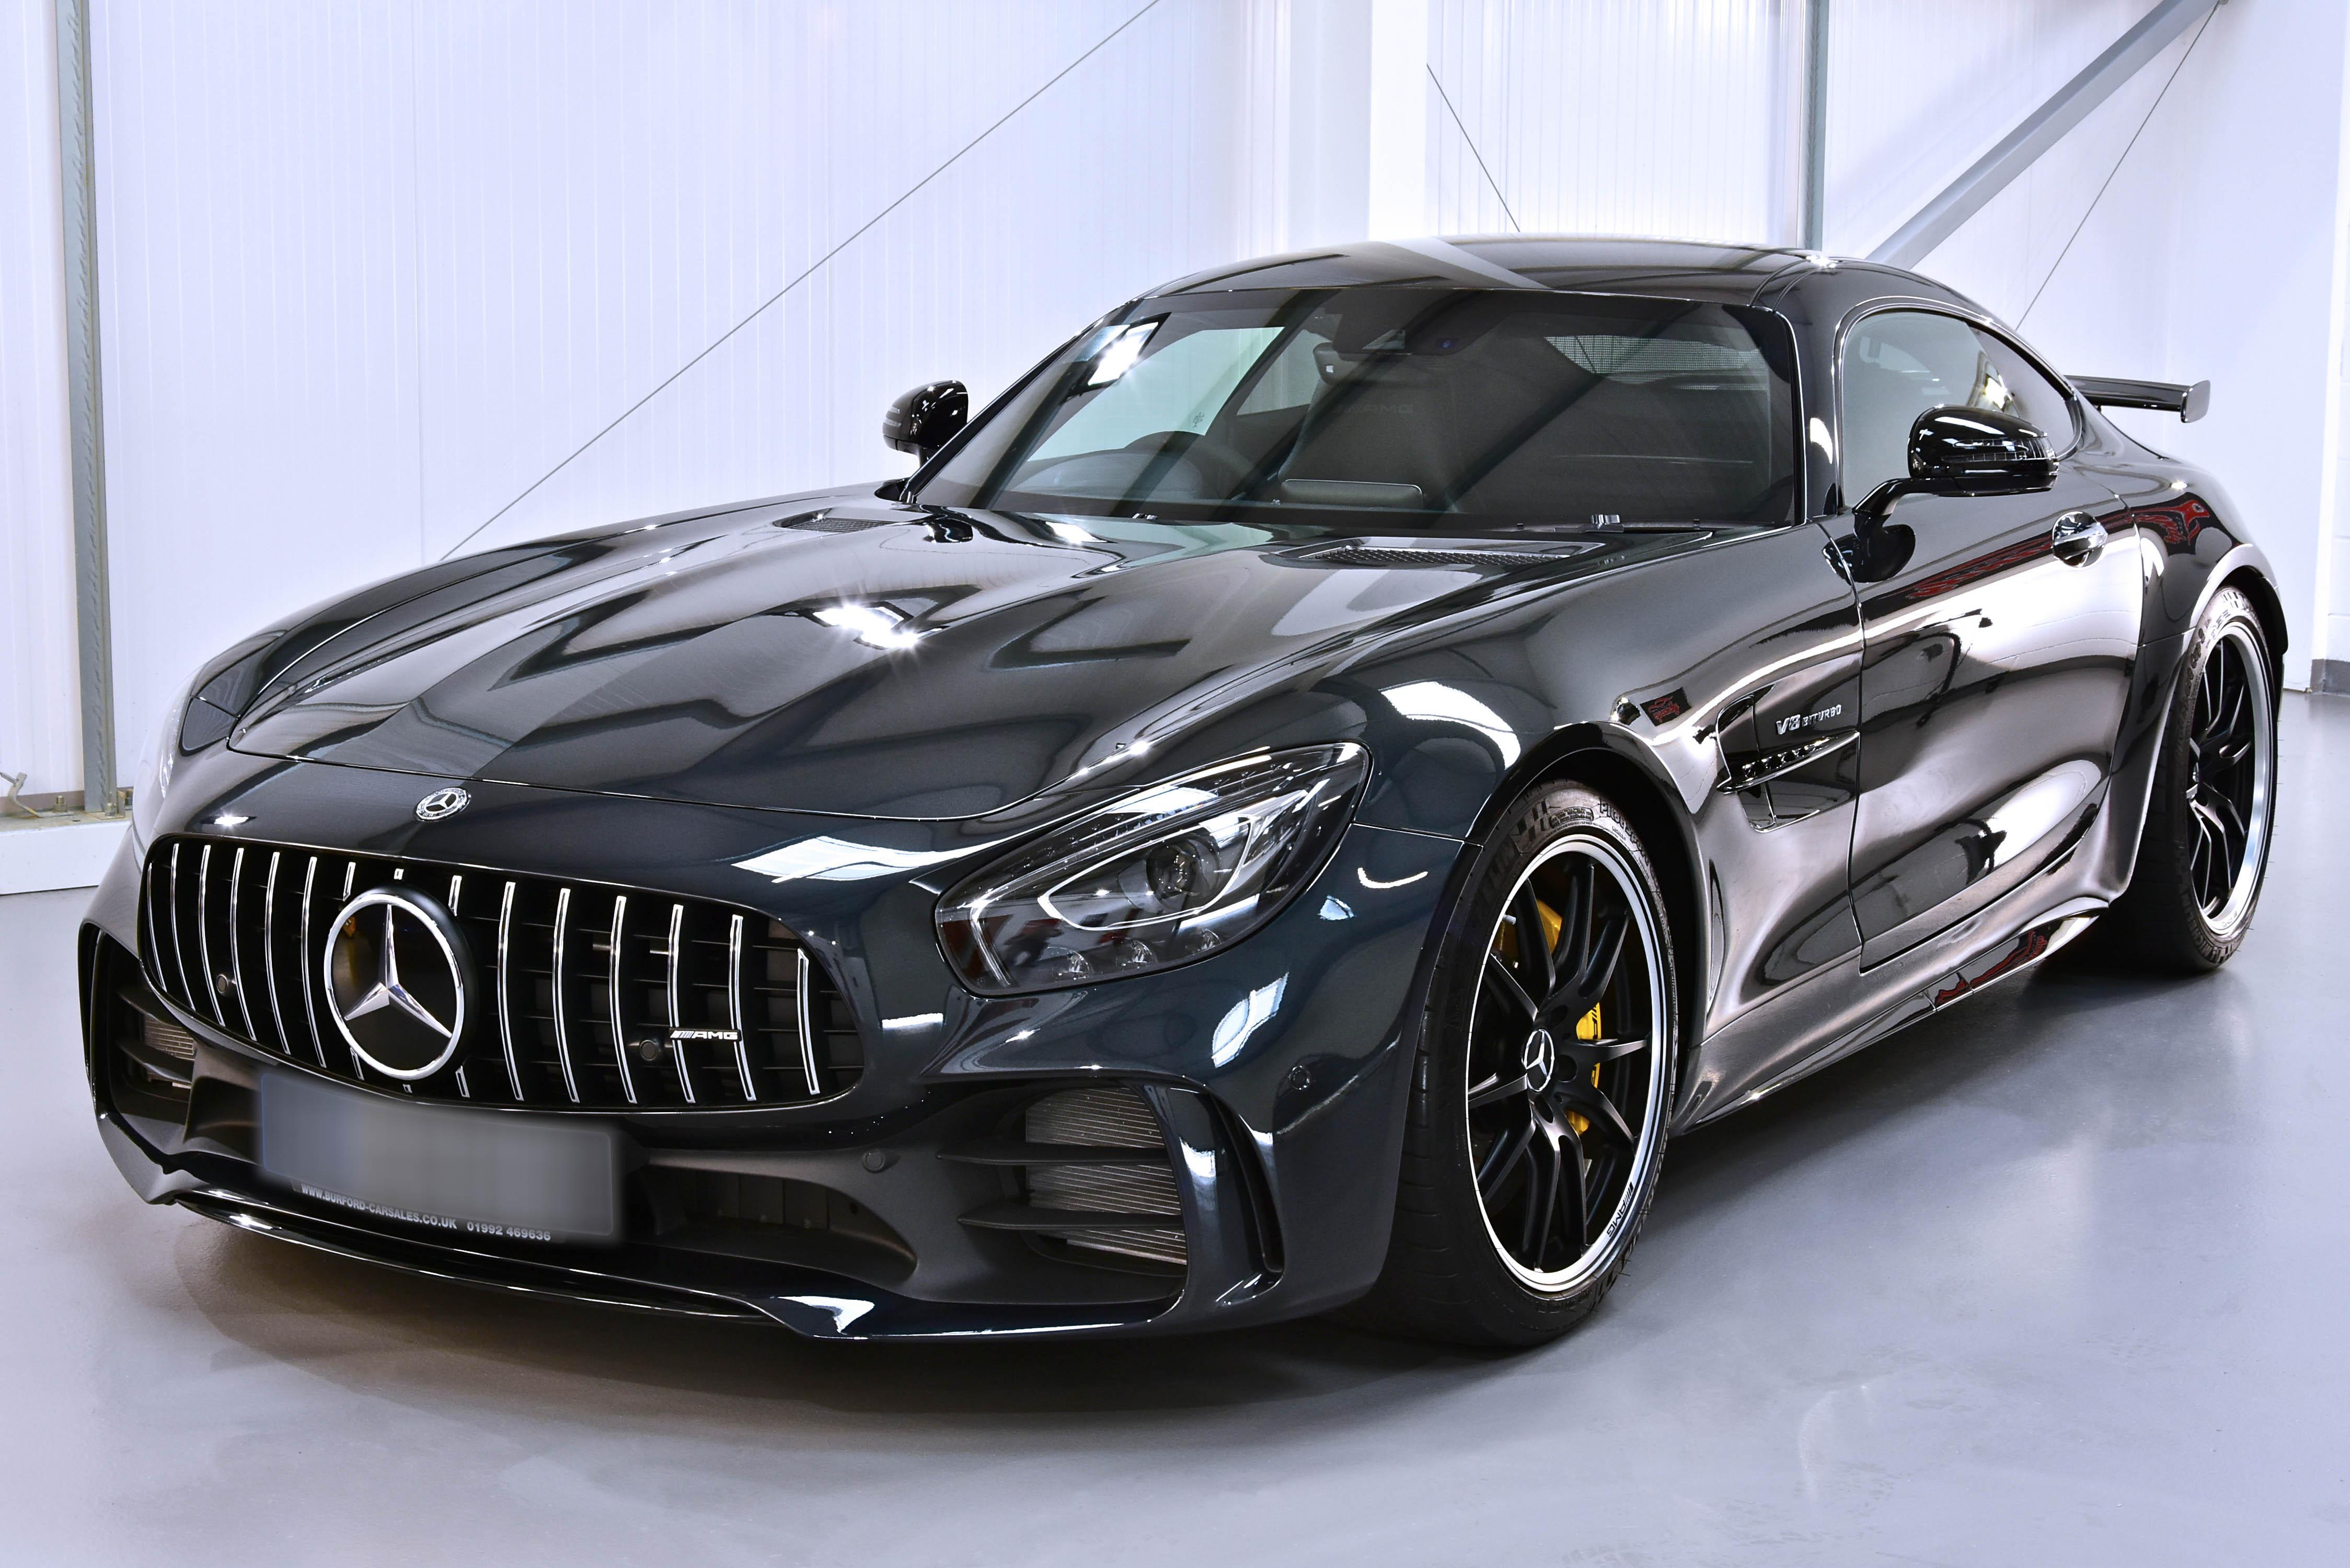 Mercedes-AMG GT R Coupé New Car Enhancement and Protection Detail with Gtechniq Crystal Serum Ultra and XPEL PPF